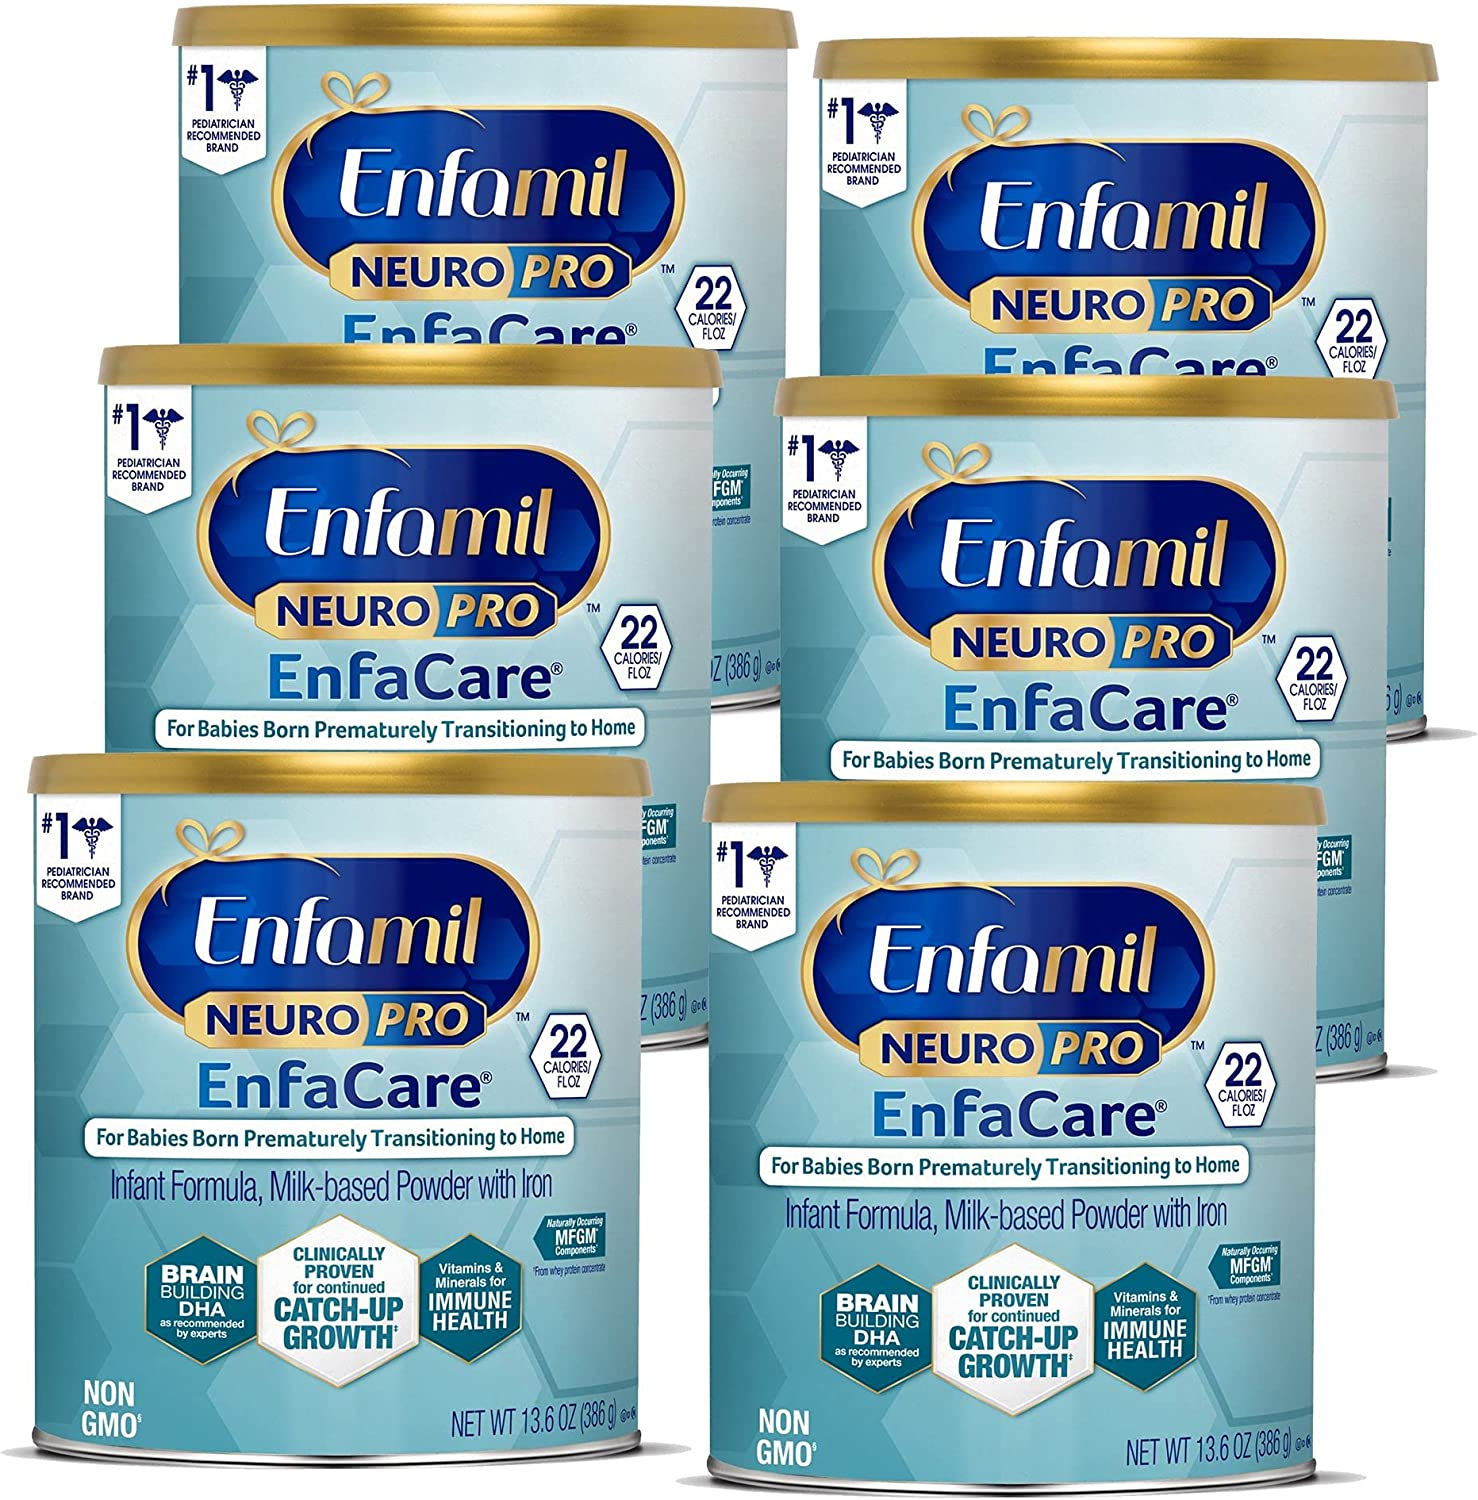 Enfamil NeuroPro EnfaCare Premature High 70% OFF Outlet material Milk-Based Formula Baby with